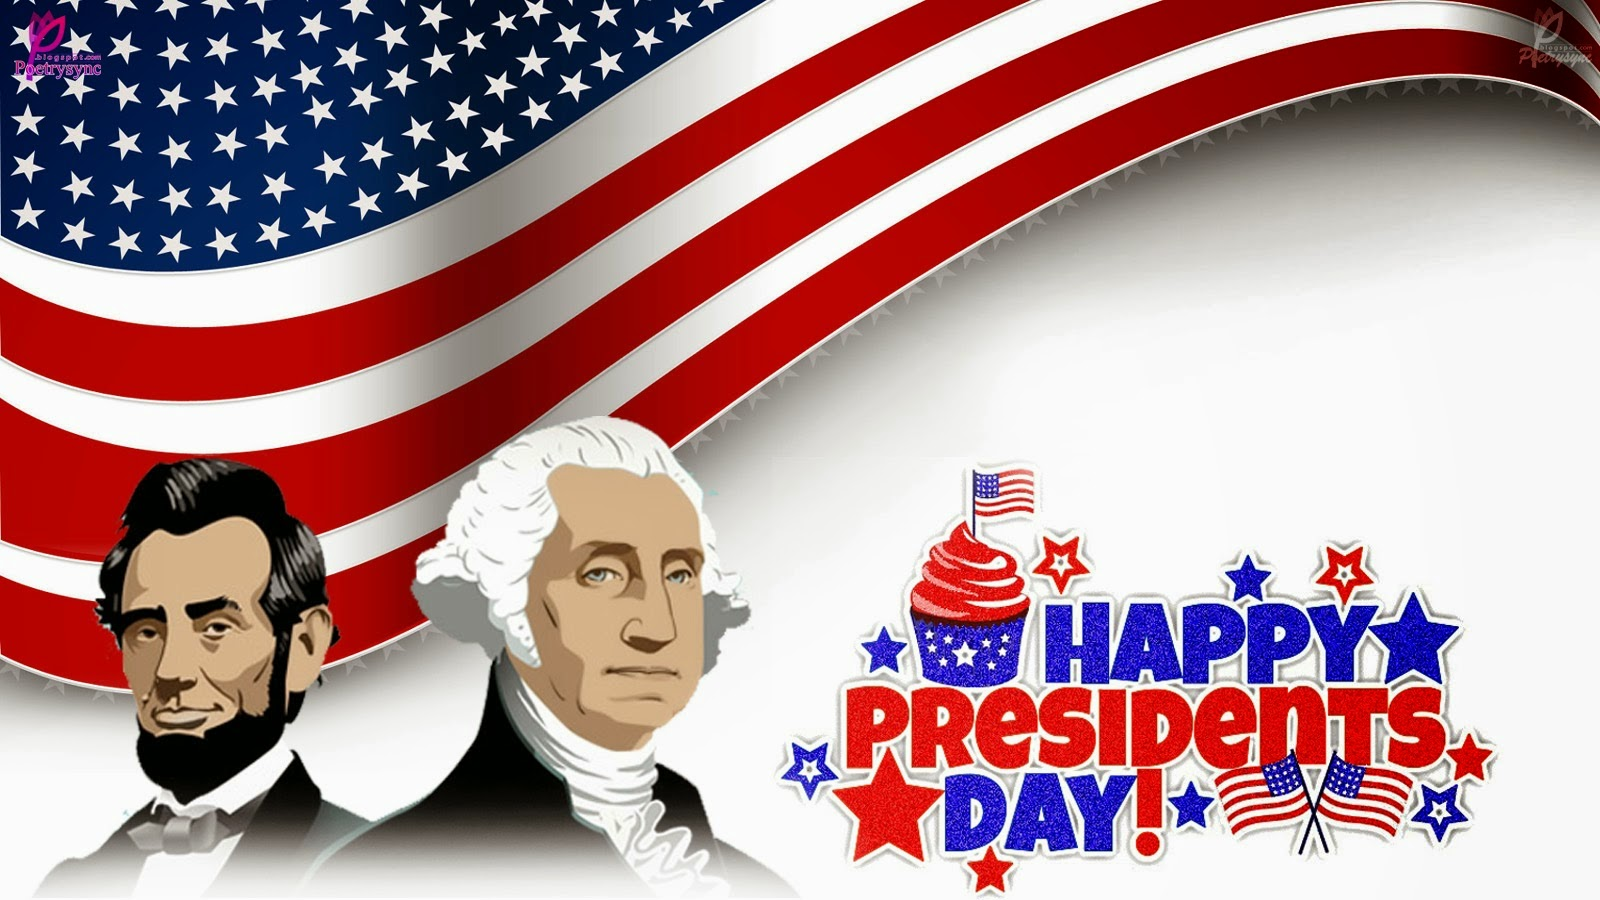 President S Day Funny Quotes Quotesgram